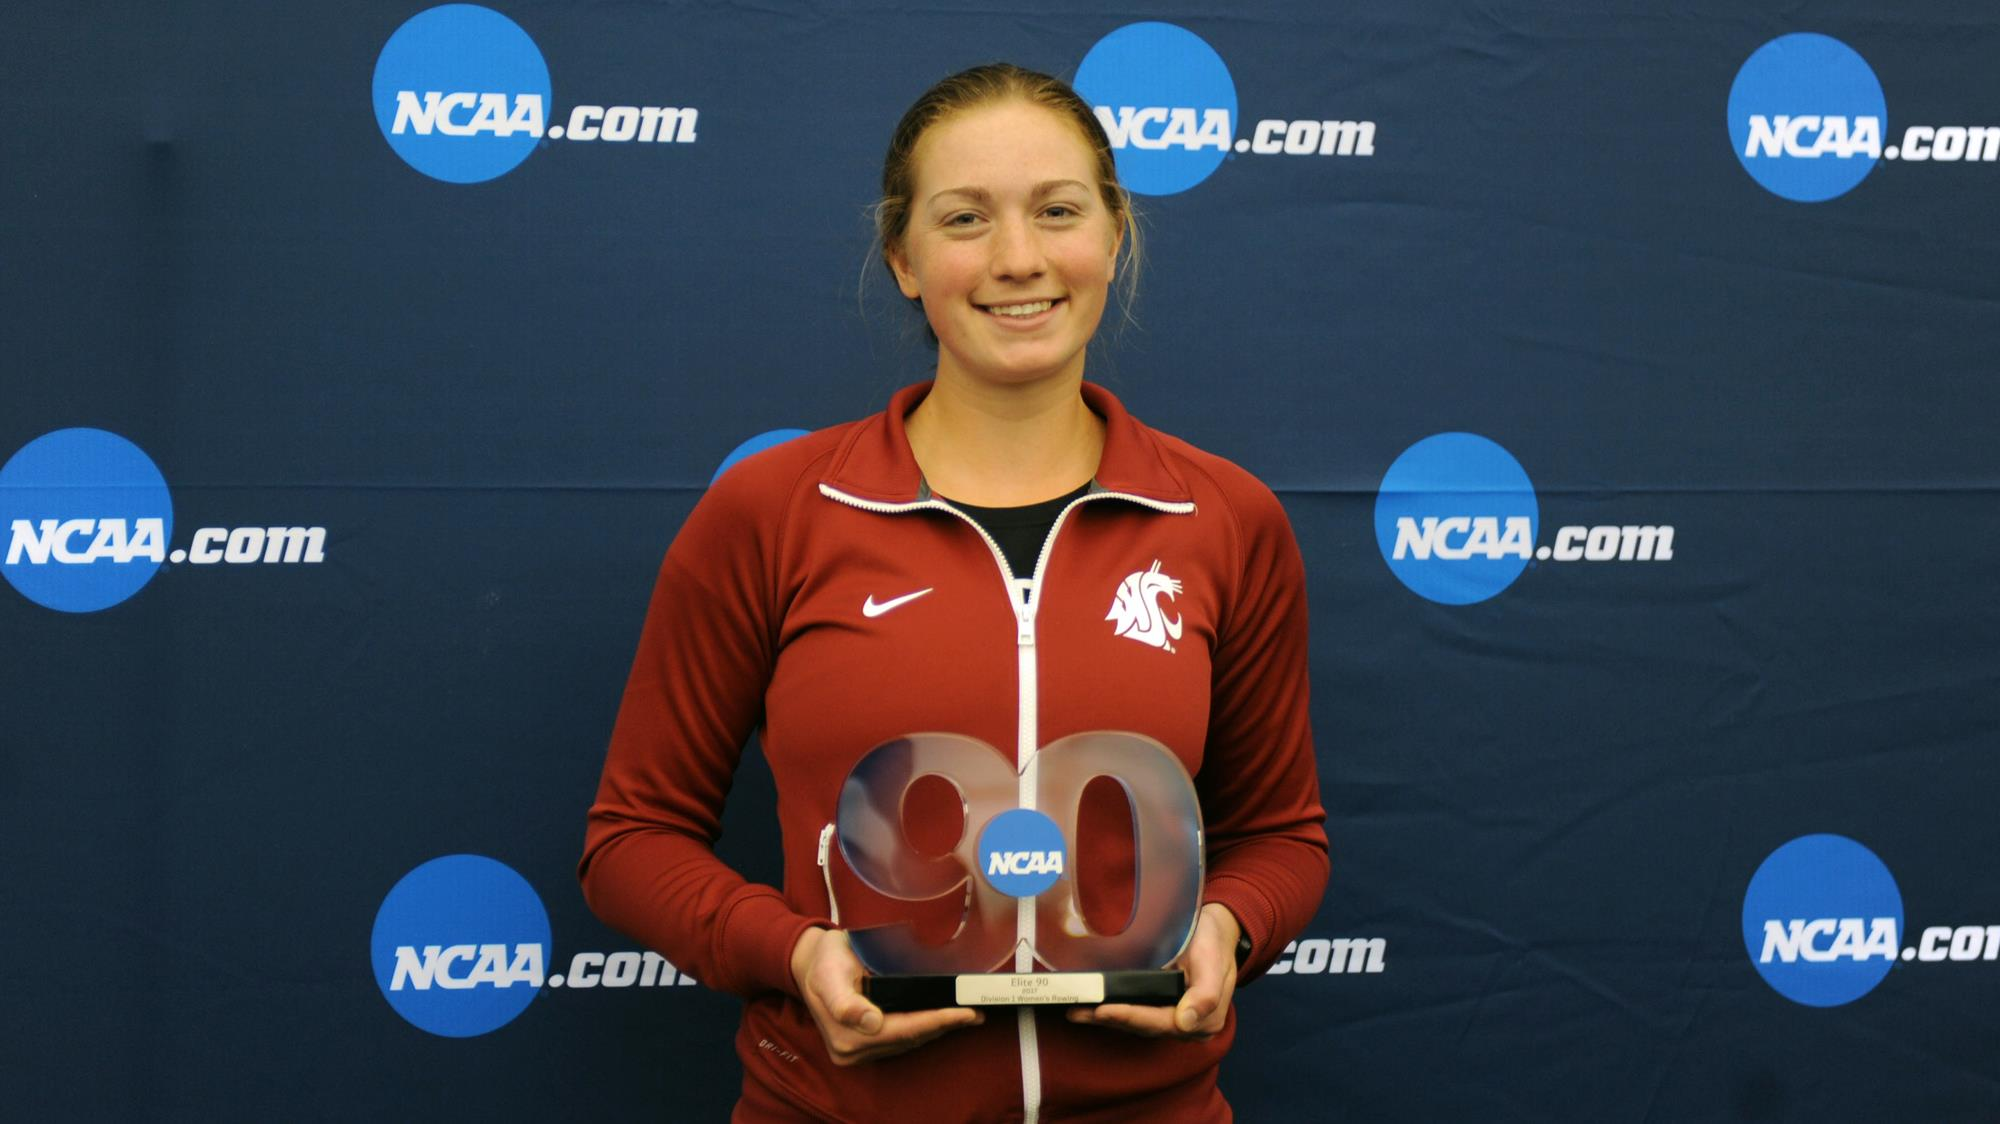 Danielson posing with her NCAA award.